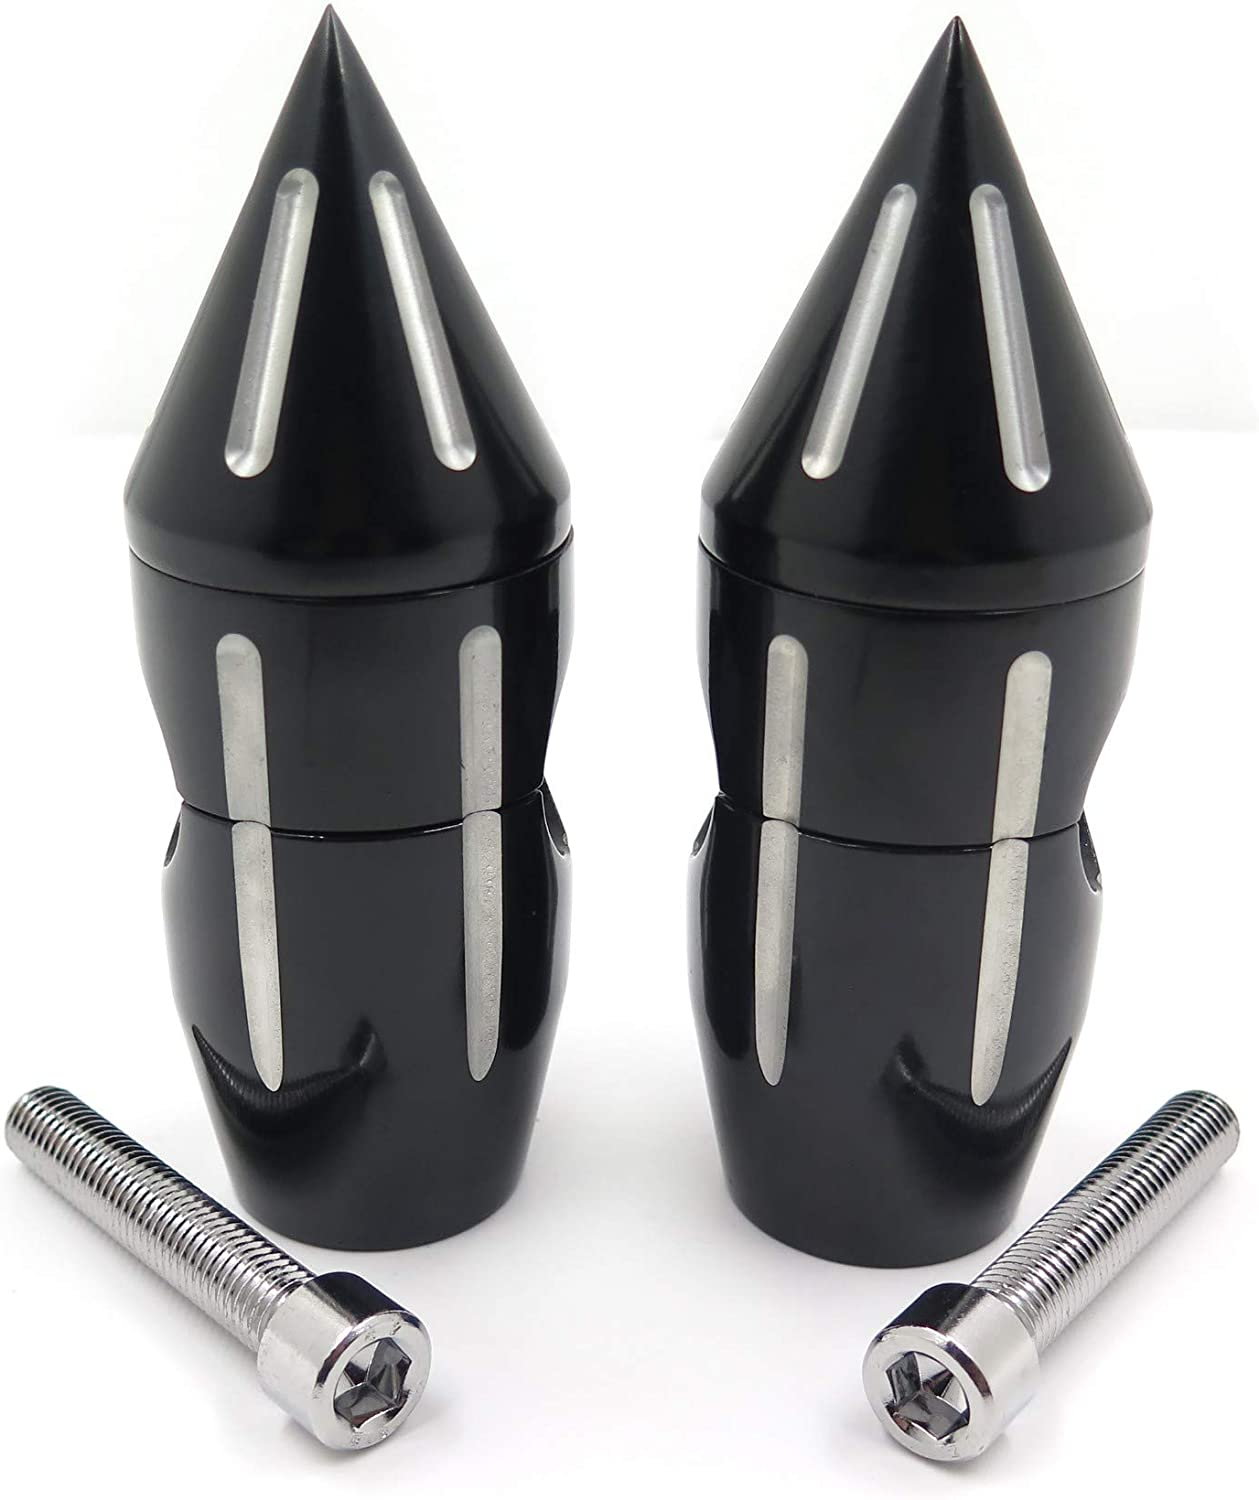 Parts Replacement of Motor Black 1Spike Handlebar Risers 2 for ...